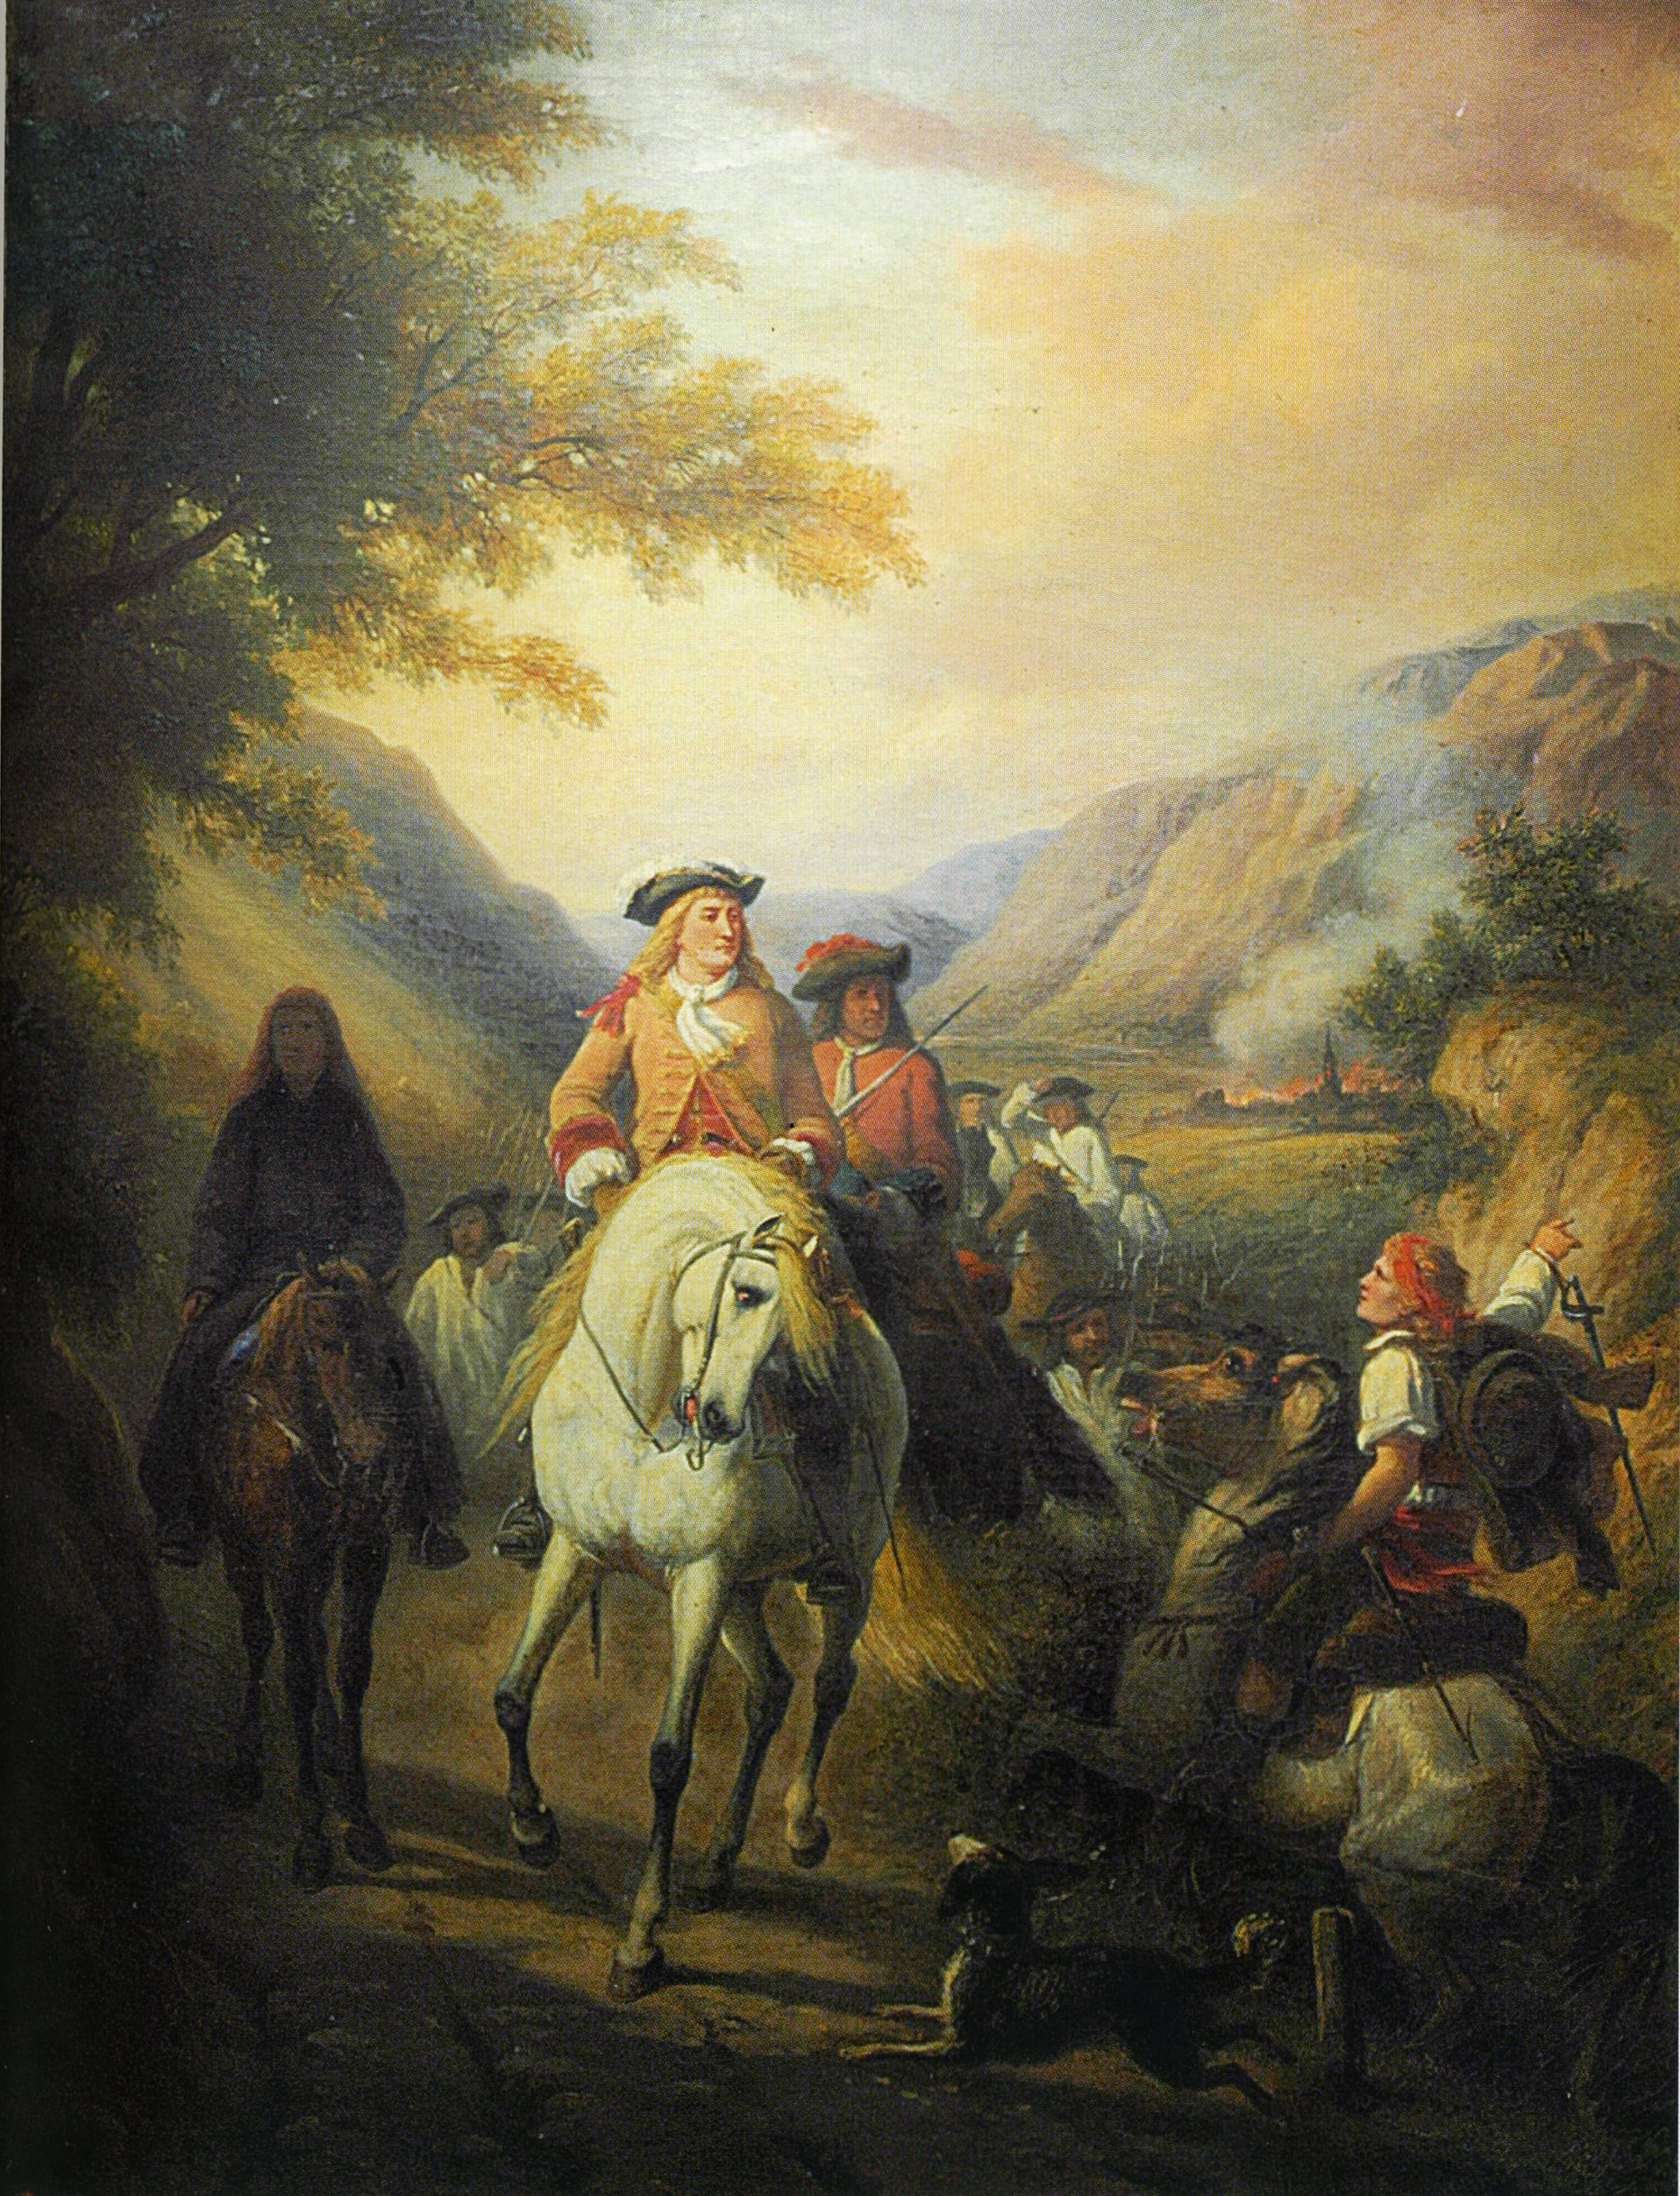 An old painting of soldiers on horseback riding through a valley